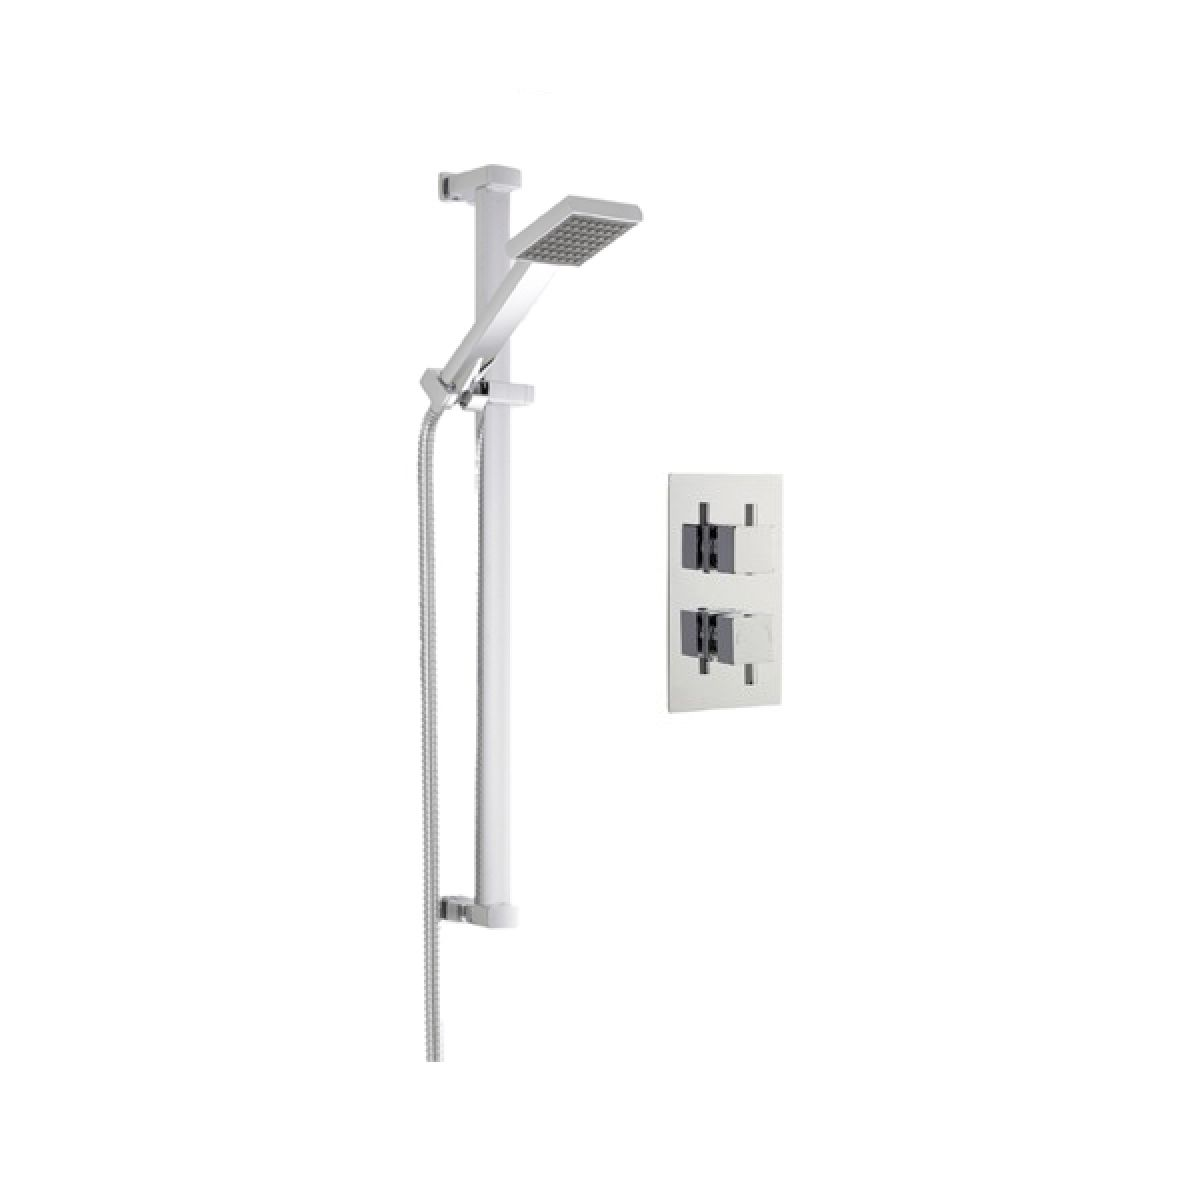 Premier Zaria Thermostatic Mixer Shower